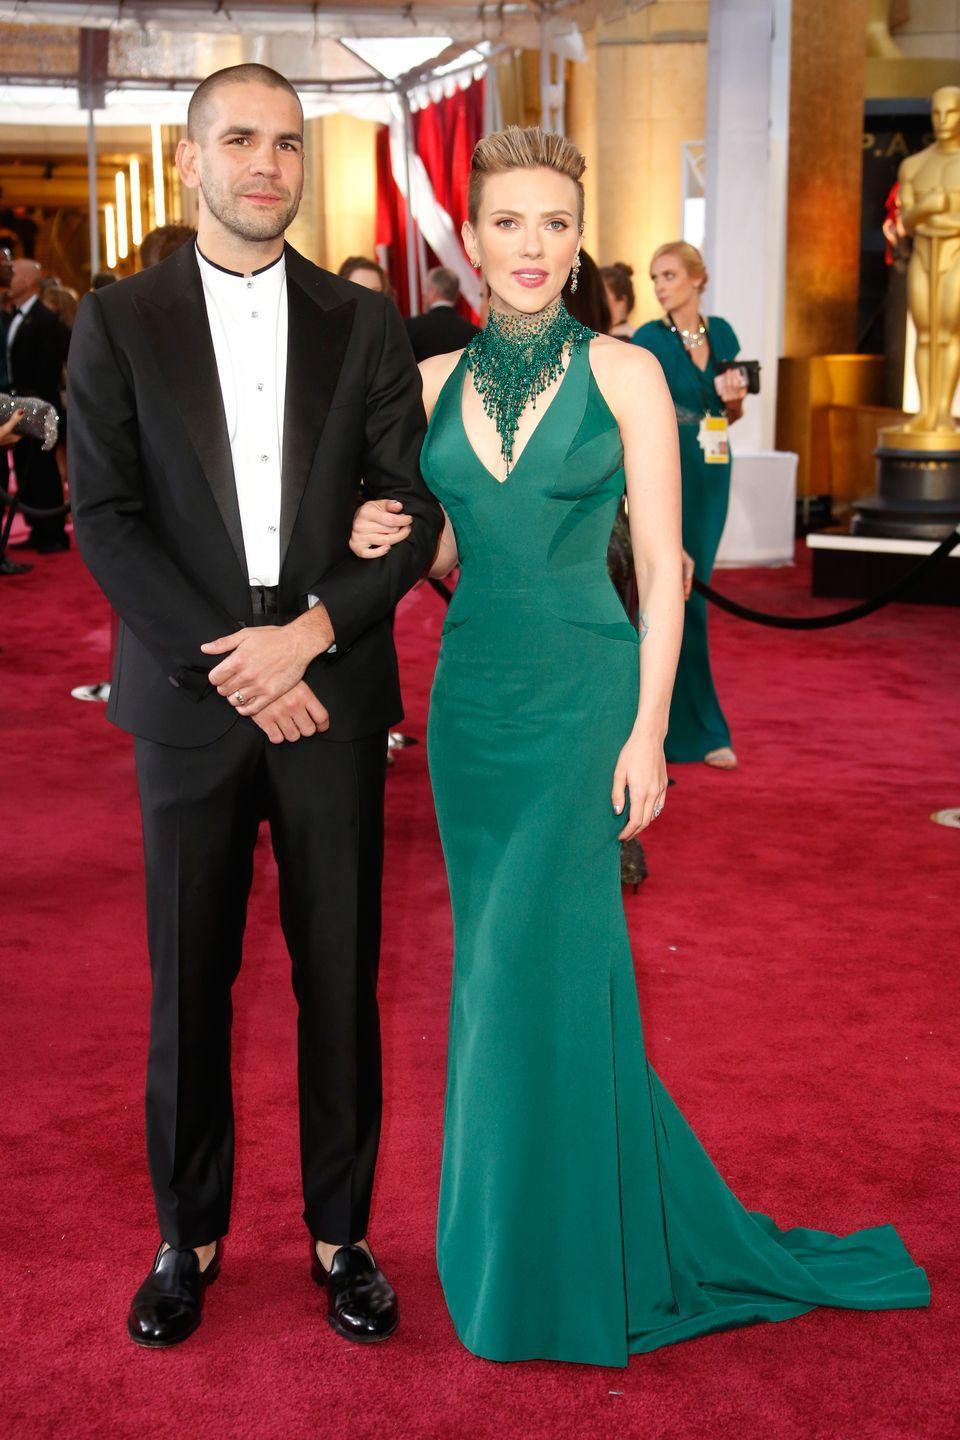 <p>Scarlett Johansson married French journalist, Romain Dauriac, in 2014, and that same year welcomed daughter Rose Dorothy Dauriac. The couple were married for three years before divorcing in 2017. Johansson is currently engaged to comedian Colin Jost. </p>